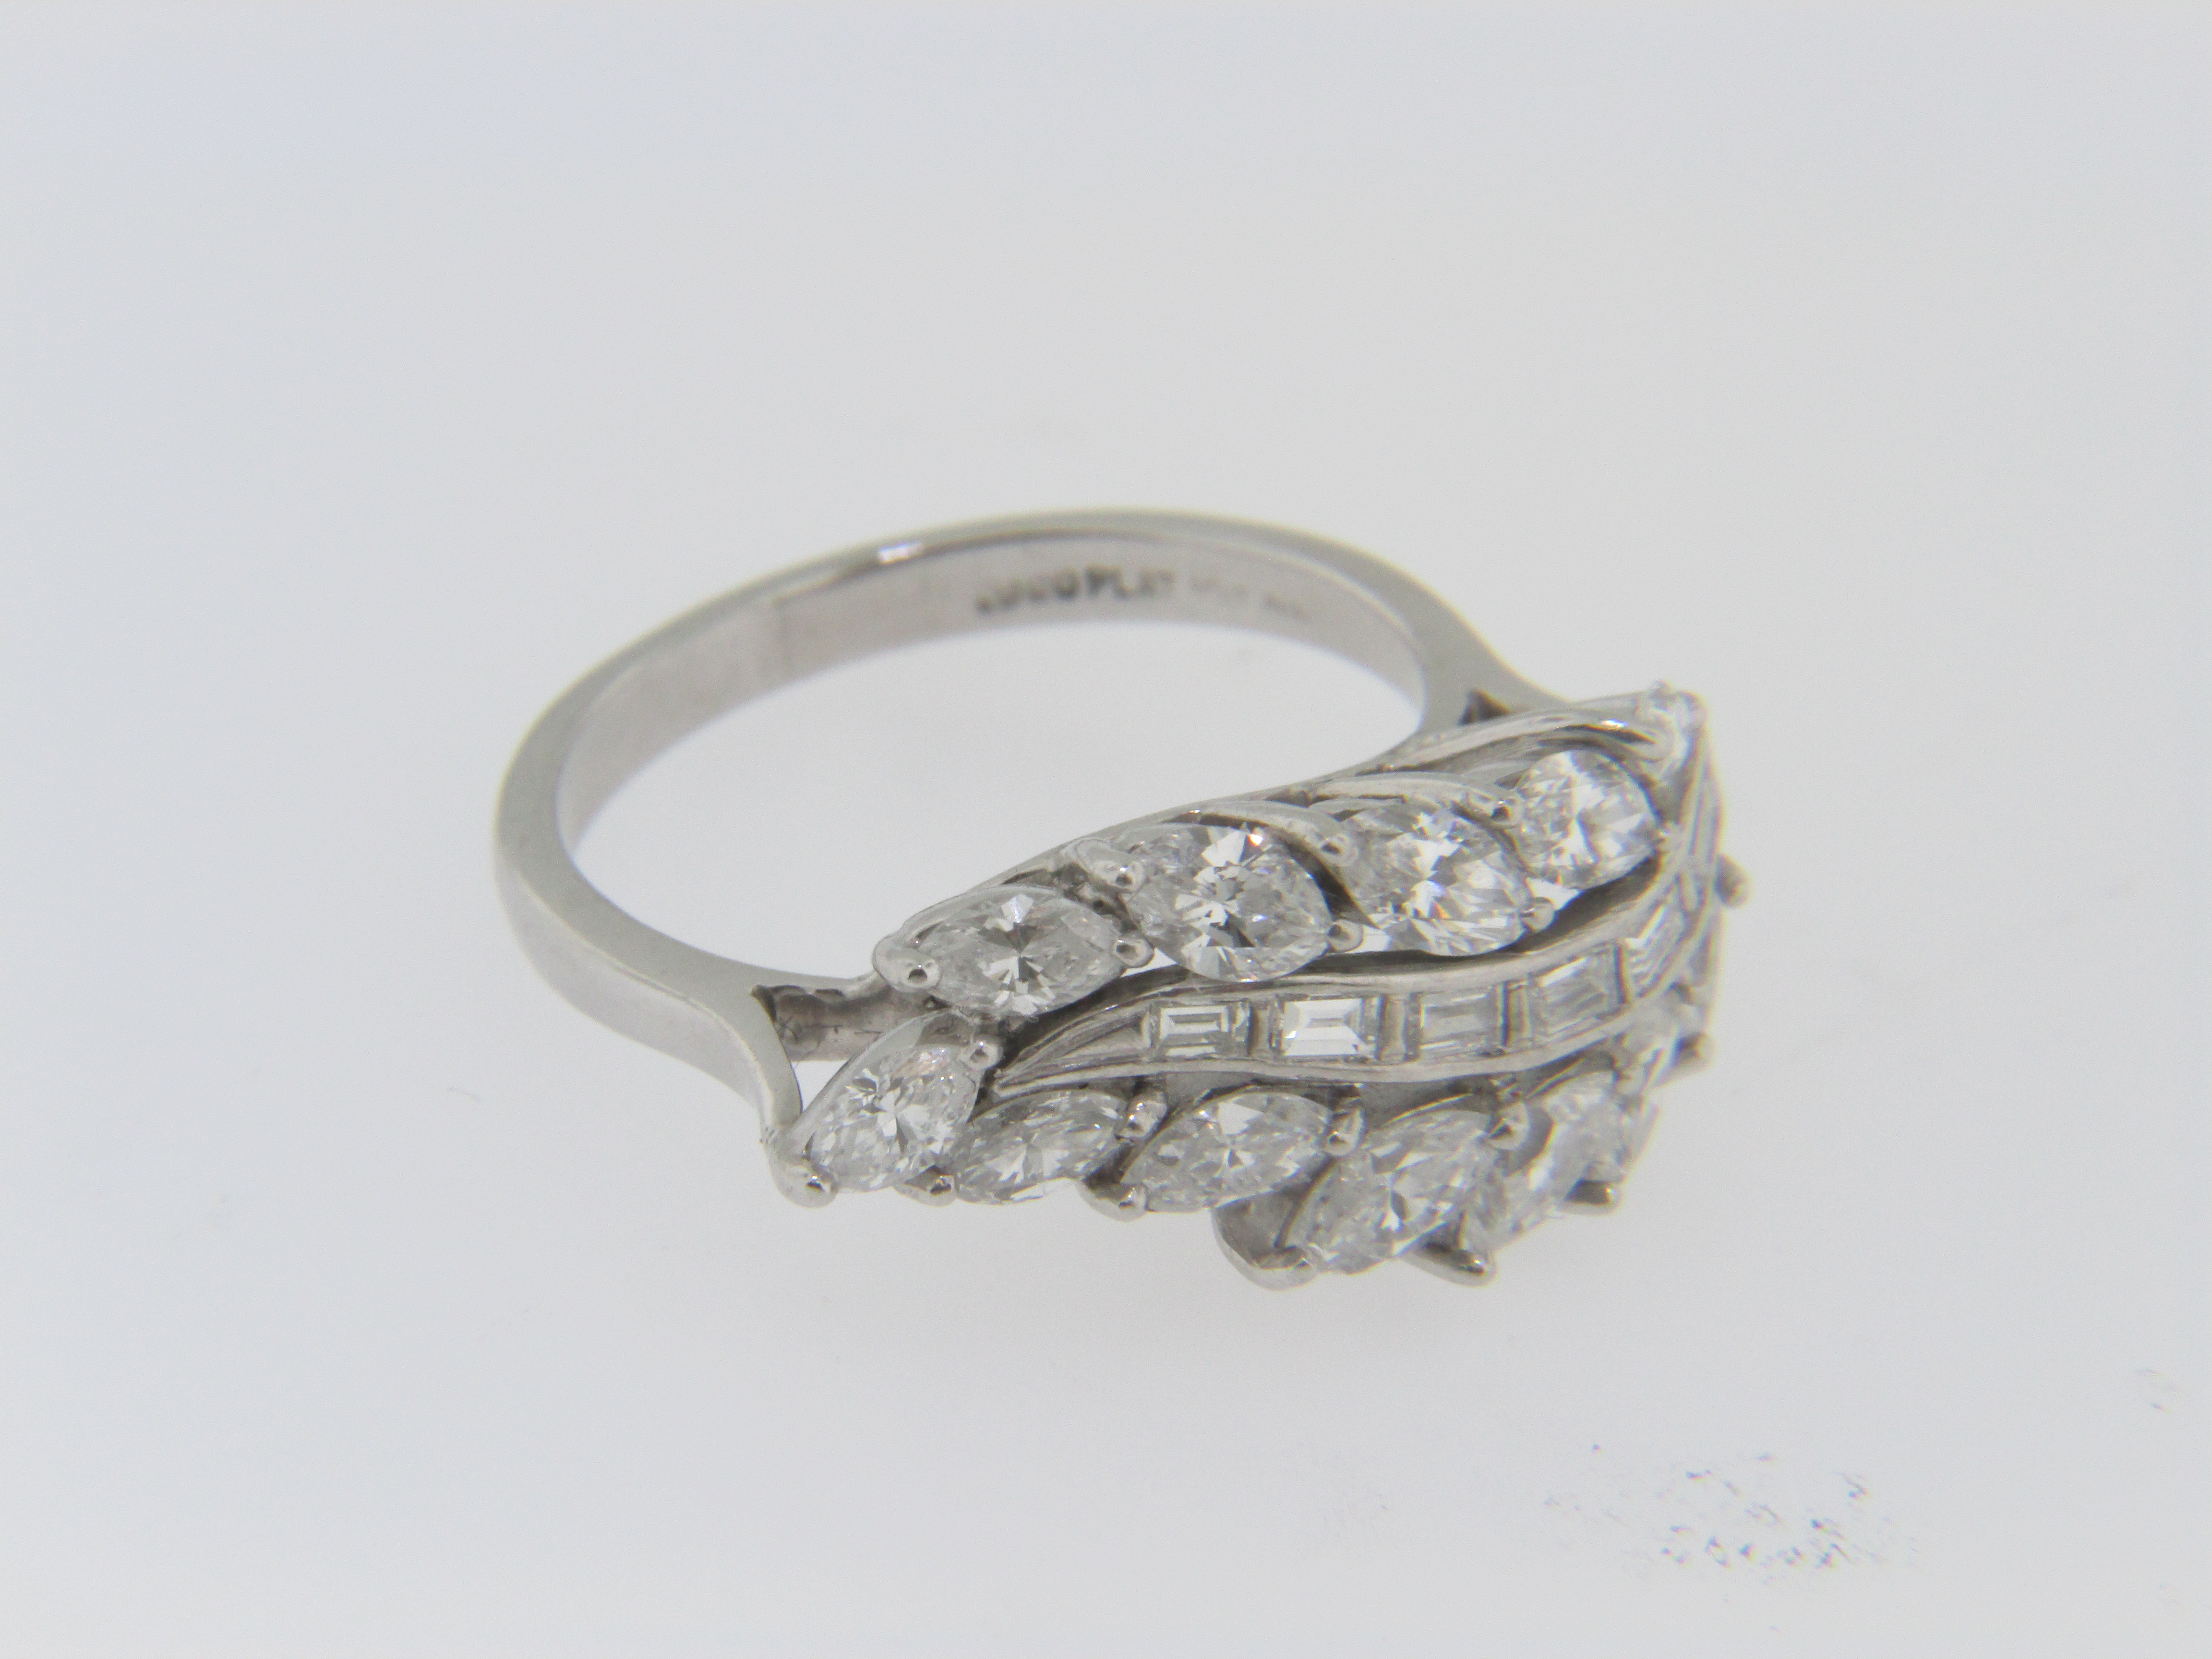 rings design leaf zales ring diamond jewelry inspiration online wedding engagement